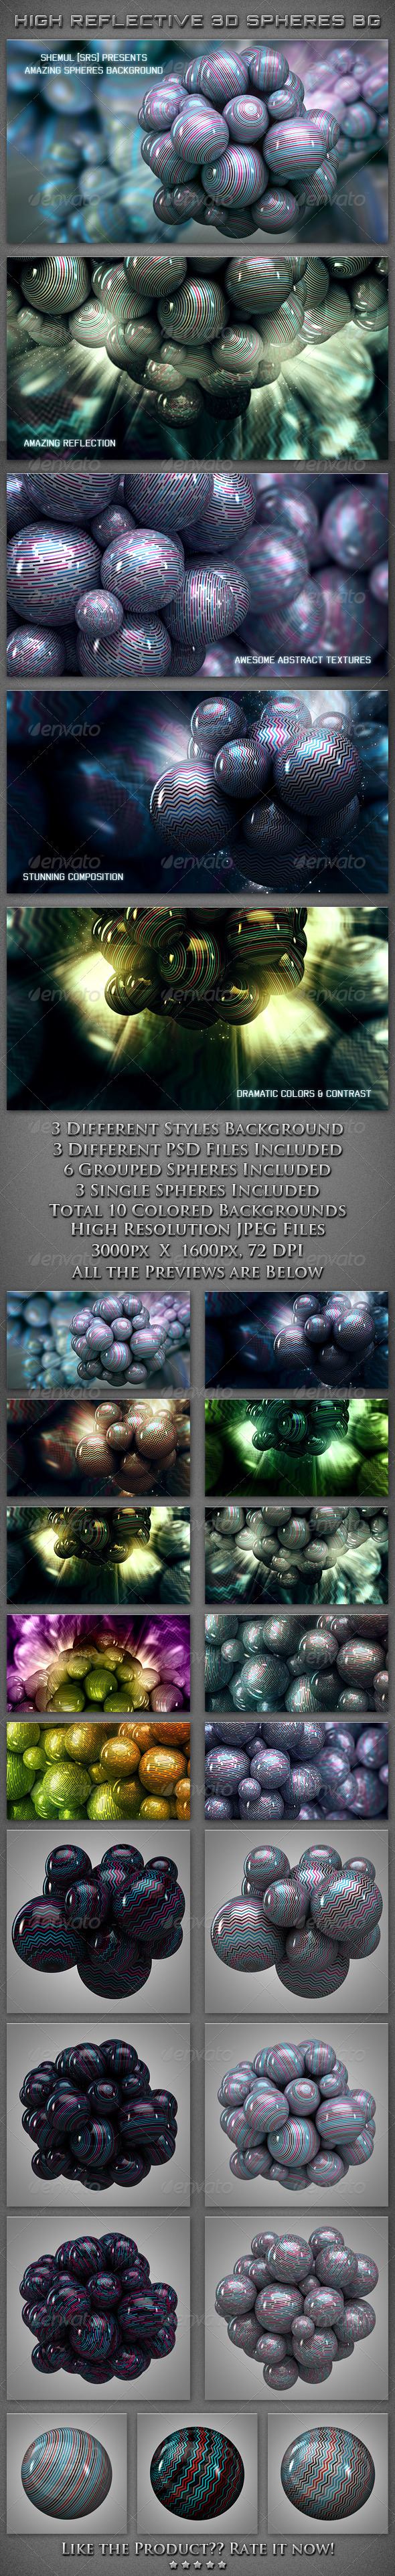 Reflective 3D Abstract Sphere Backgrounds - Abstract Backgrounds